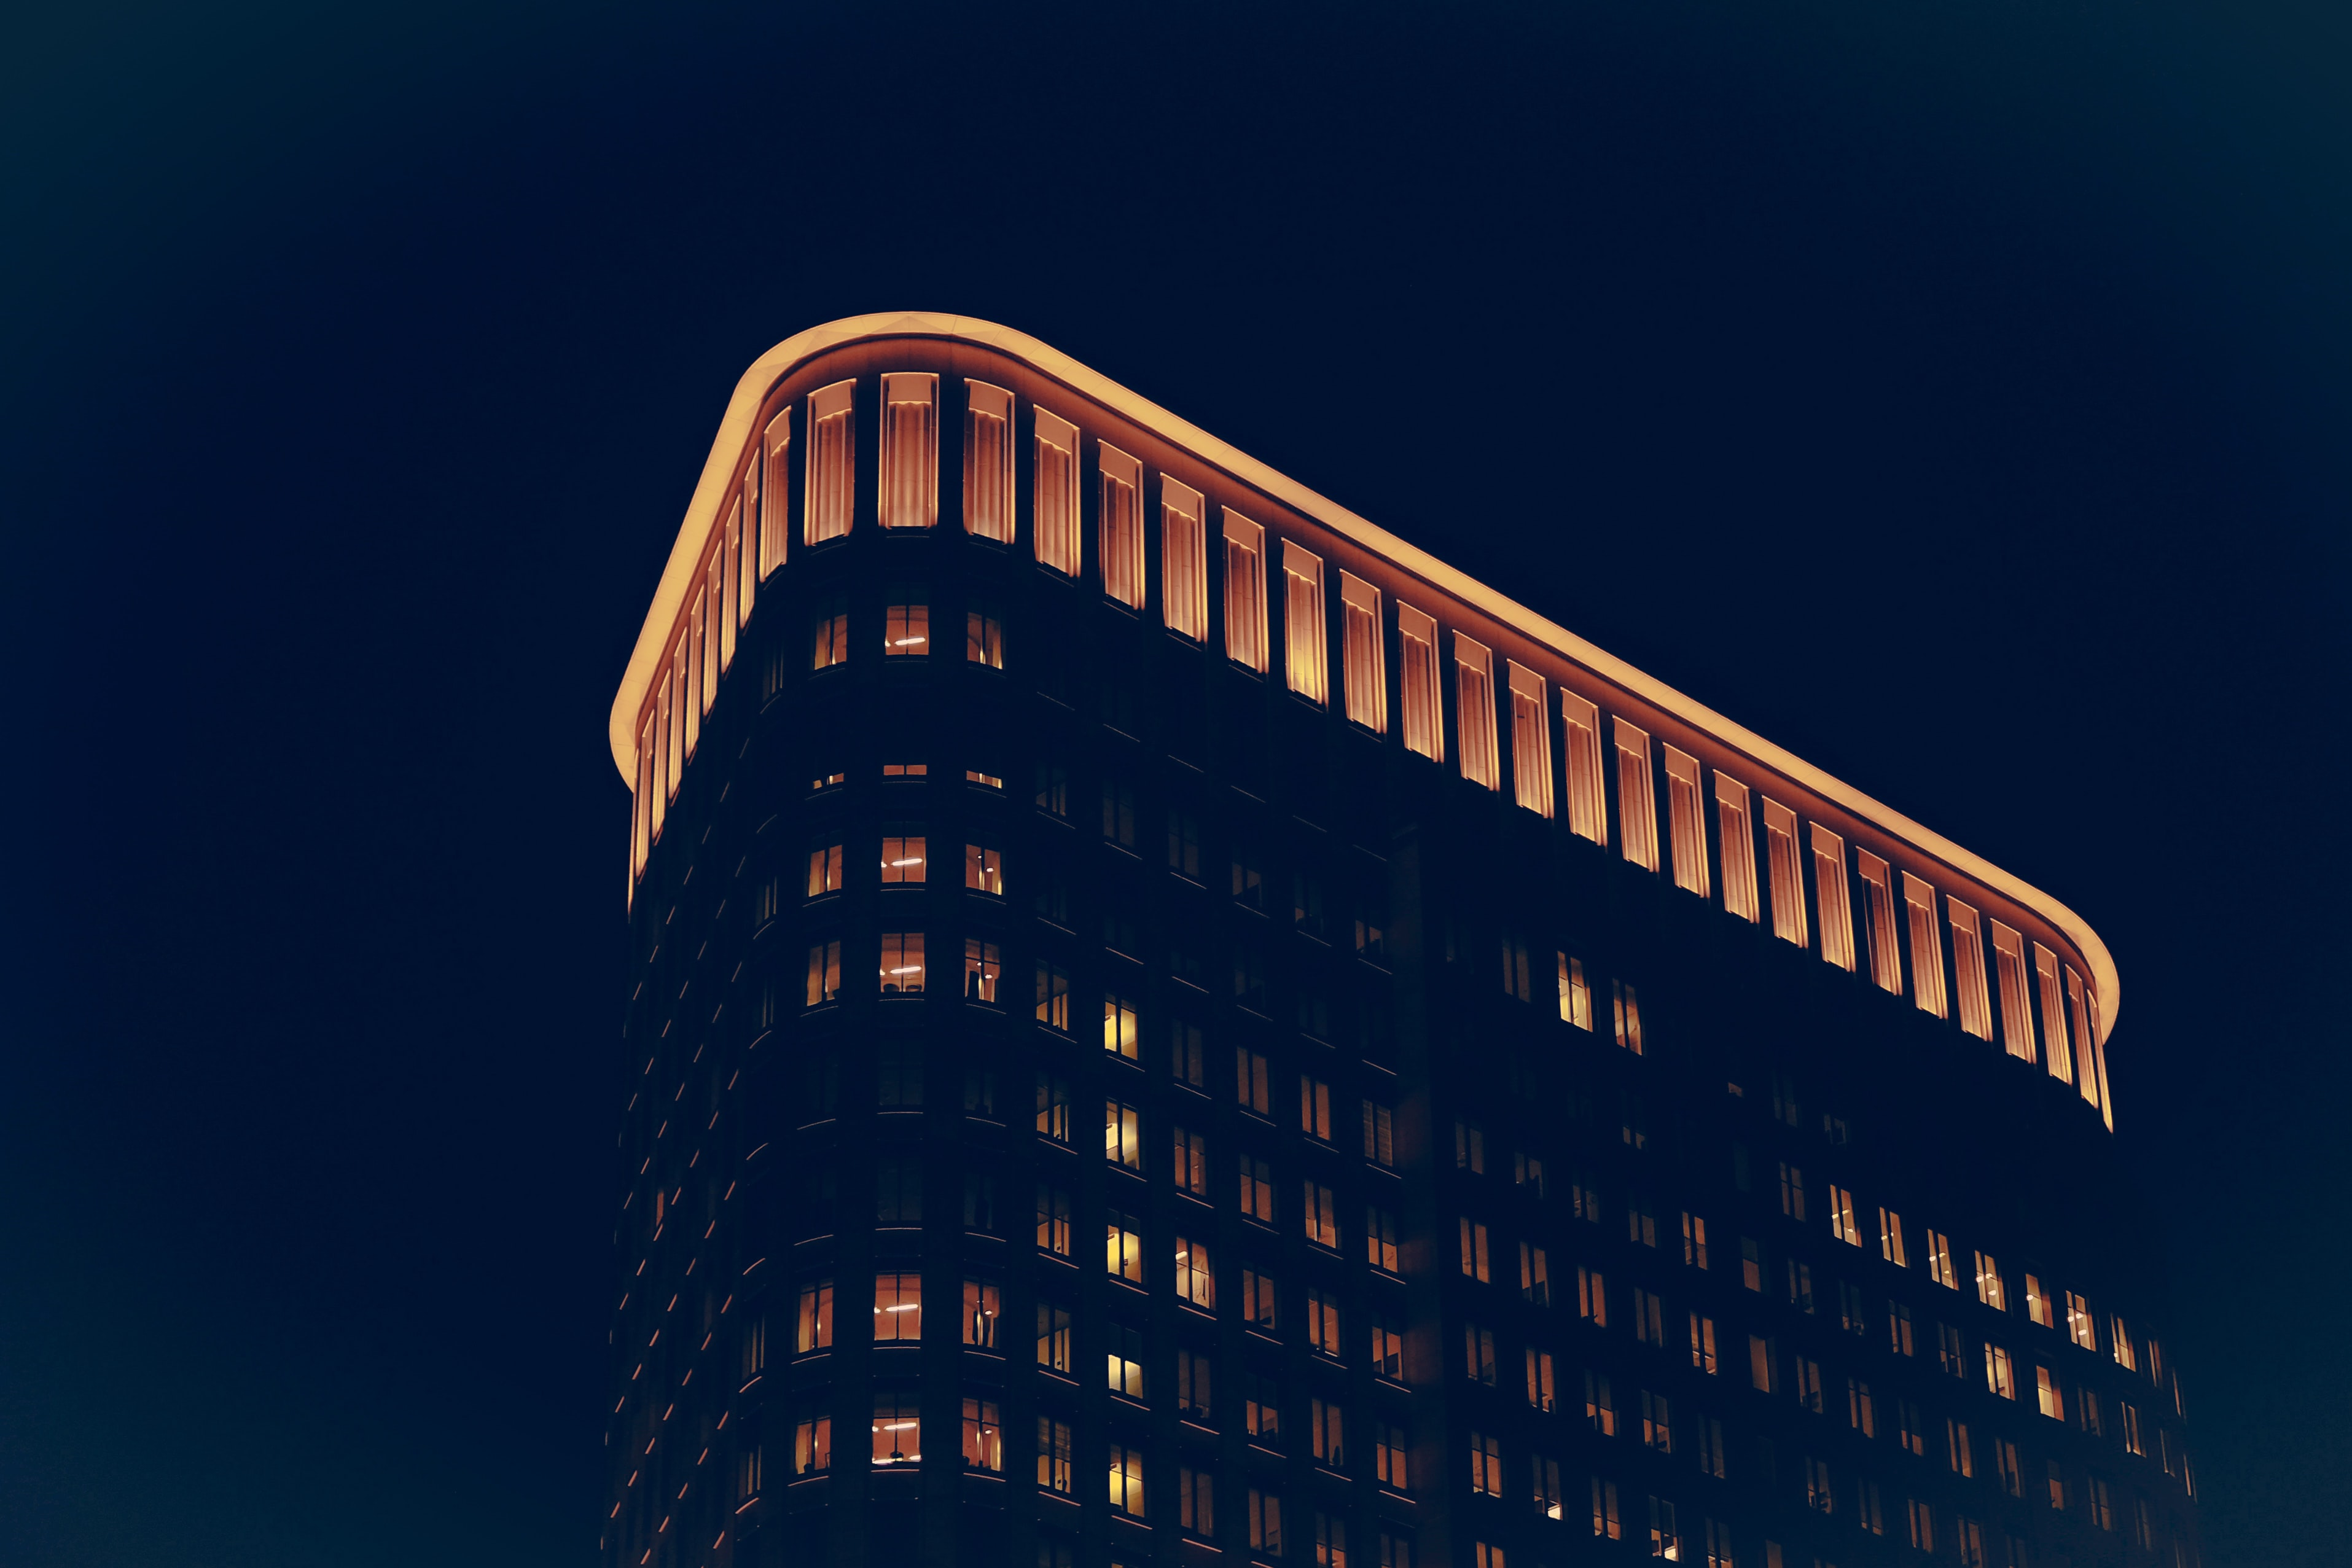 low angle photo of building at nighttime